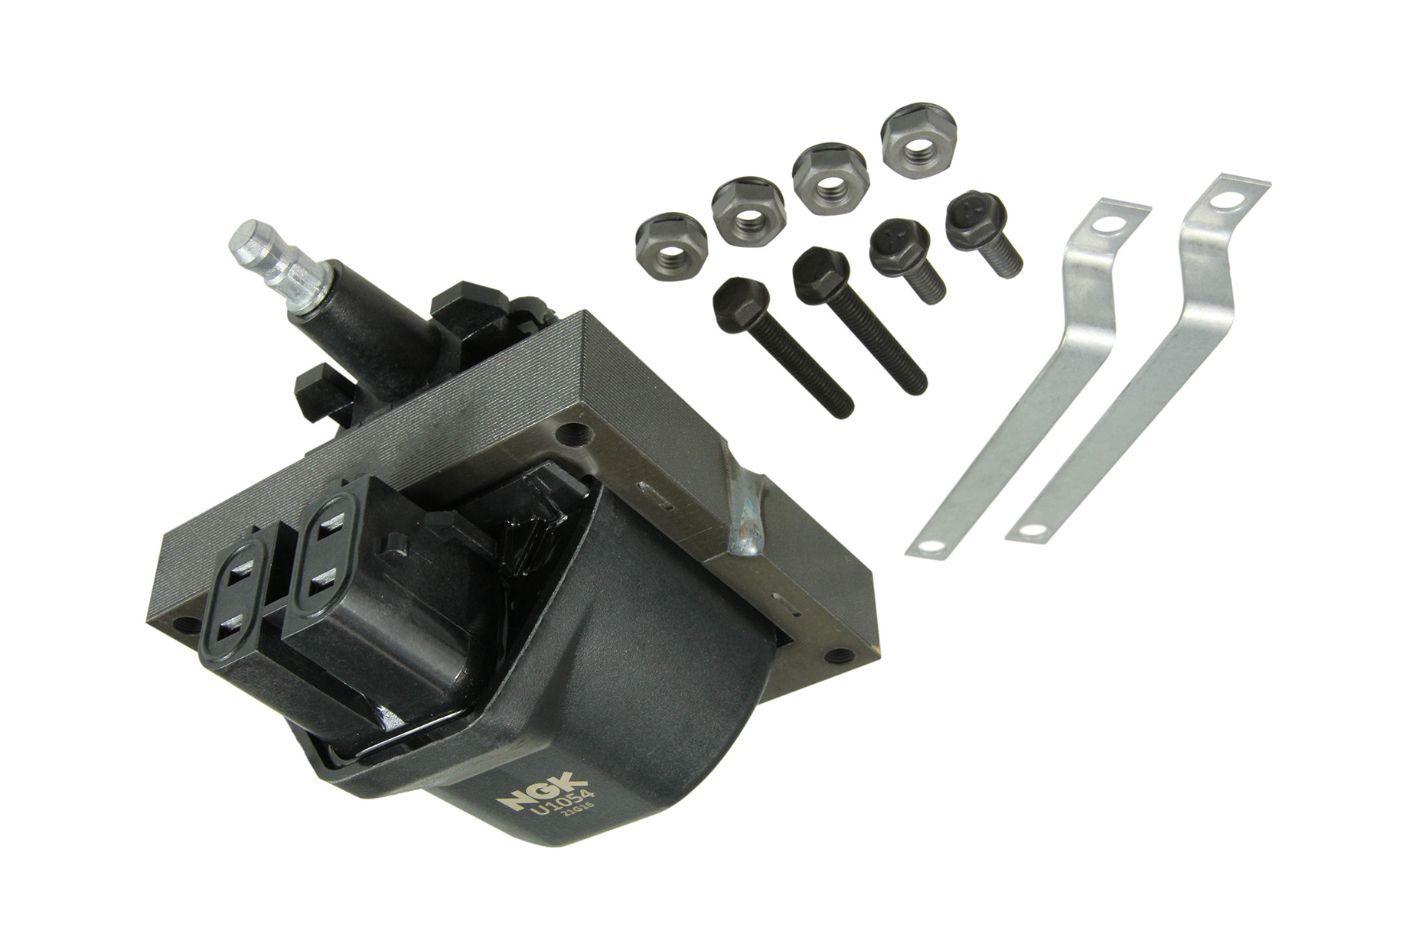 NGK U1054 Ignition Coil, Male HEI Style, OE Specs, 4 Blade Terminal, Electronic Ignition, Black, Each